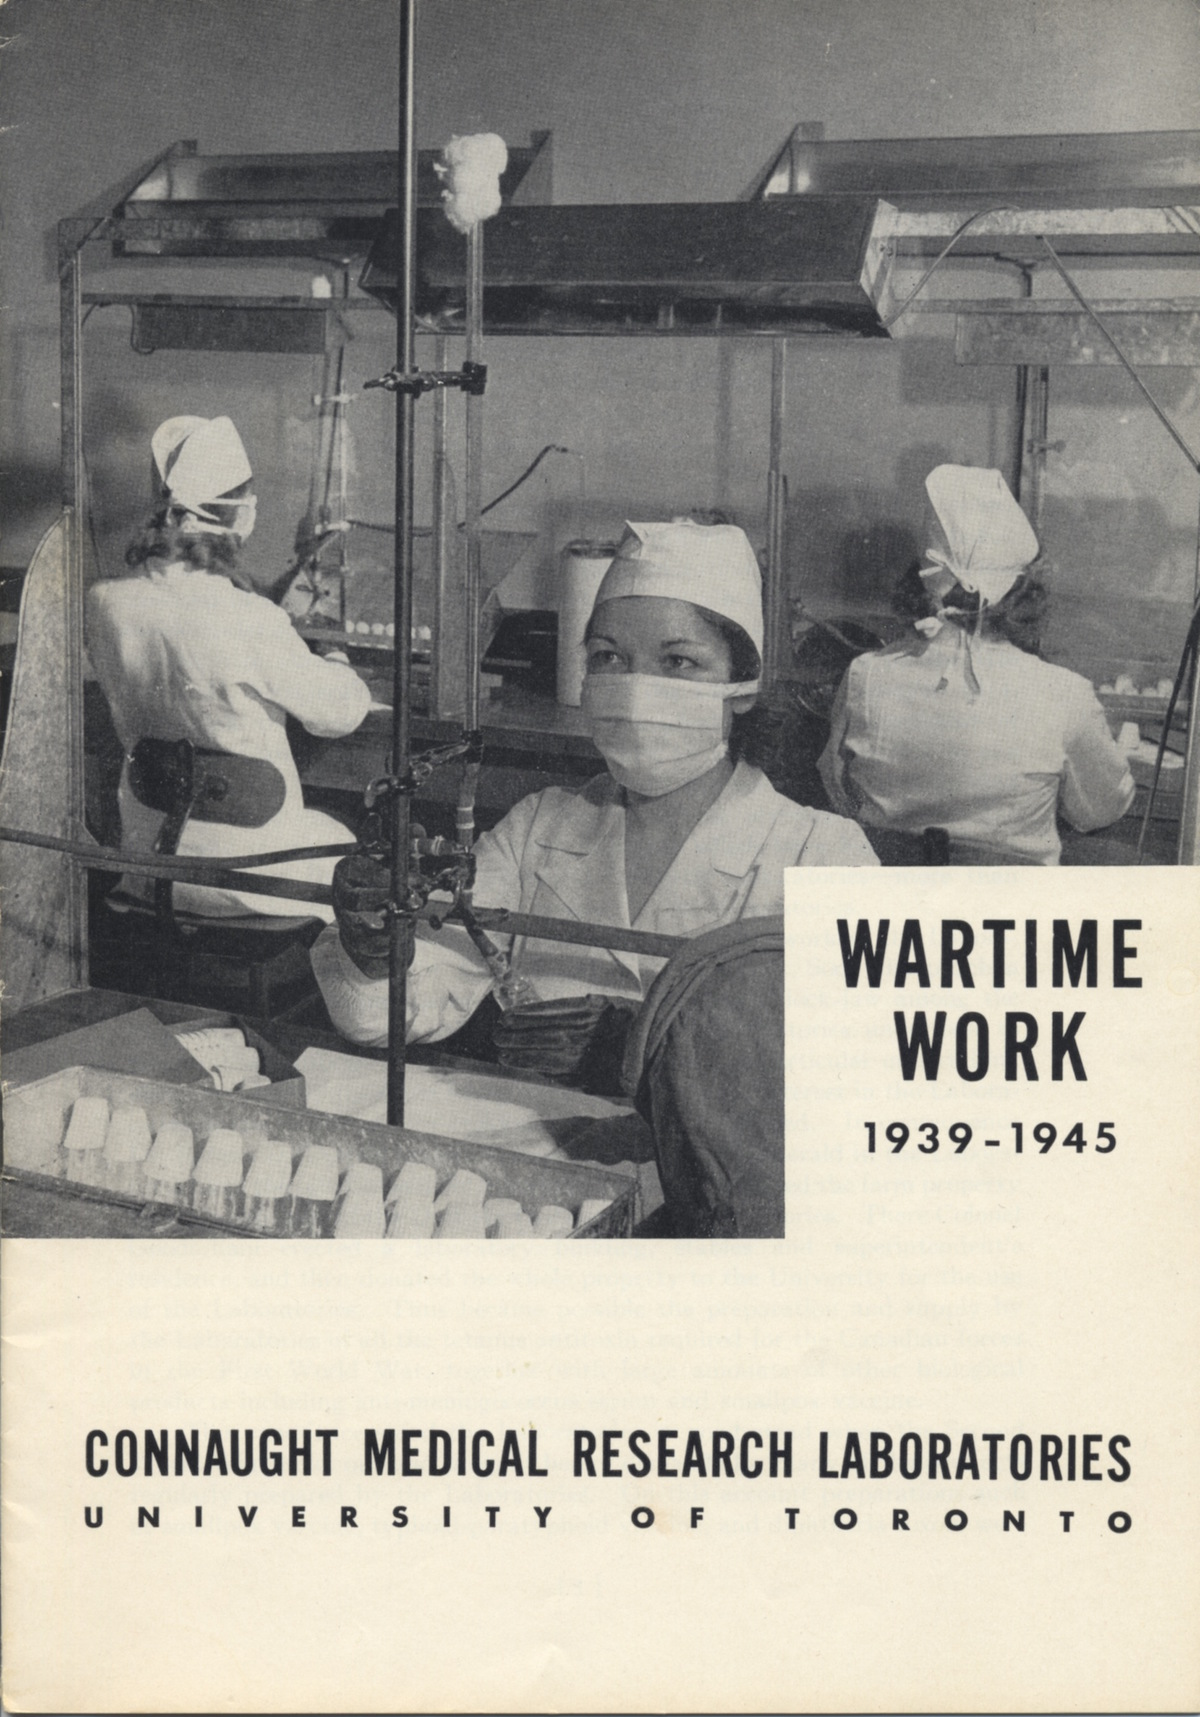 "Connaught Laboratories published a booklet describing the Labs' ""Wartime Work, 1939-1945,"" which was written by Dr. Robert D. Defries, Director of Connaught and the School of Hygiene. The full booklet is available at http://healthheritageresearch.com/clients/docs/SPCA/CMRL-WartimeWork-1939-1945-booklet.pdf"